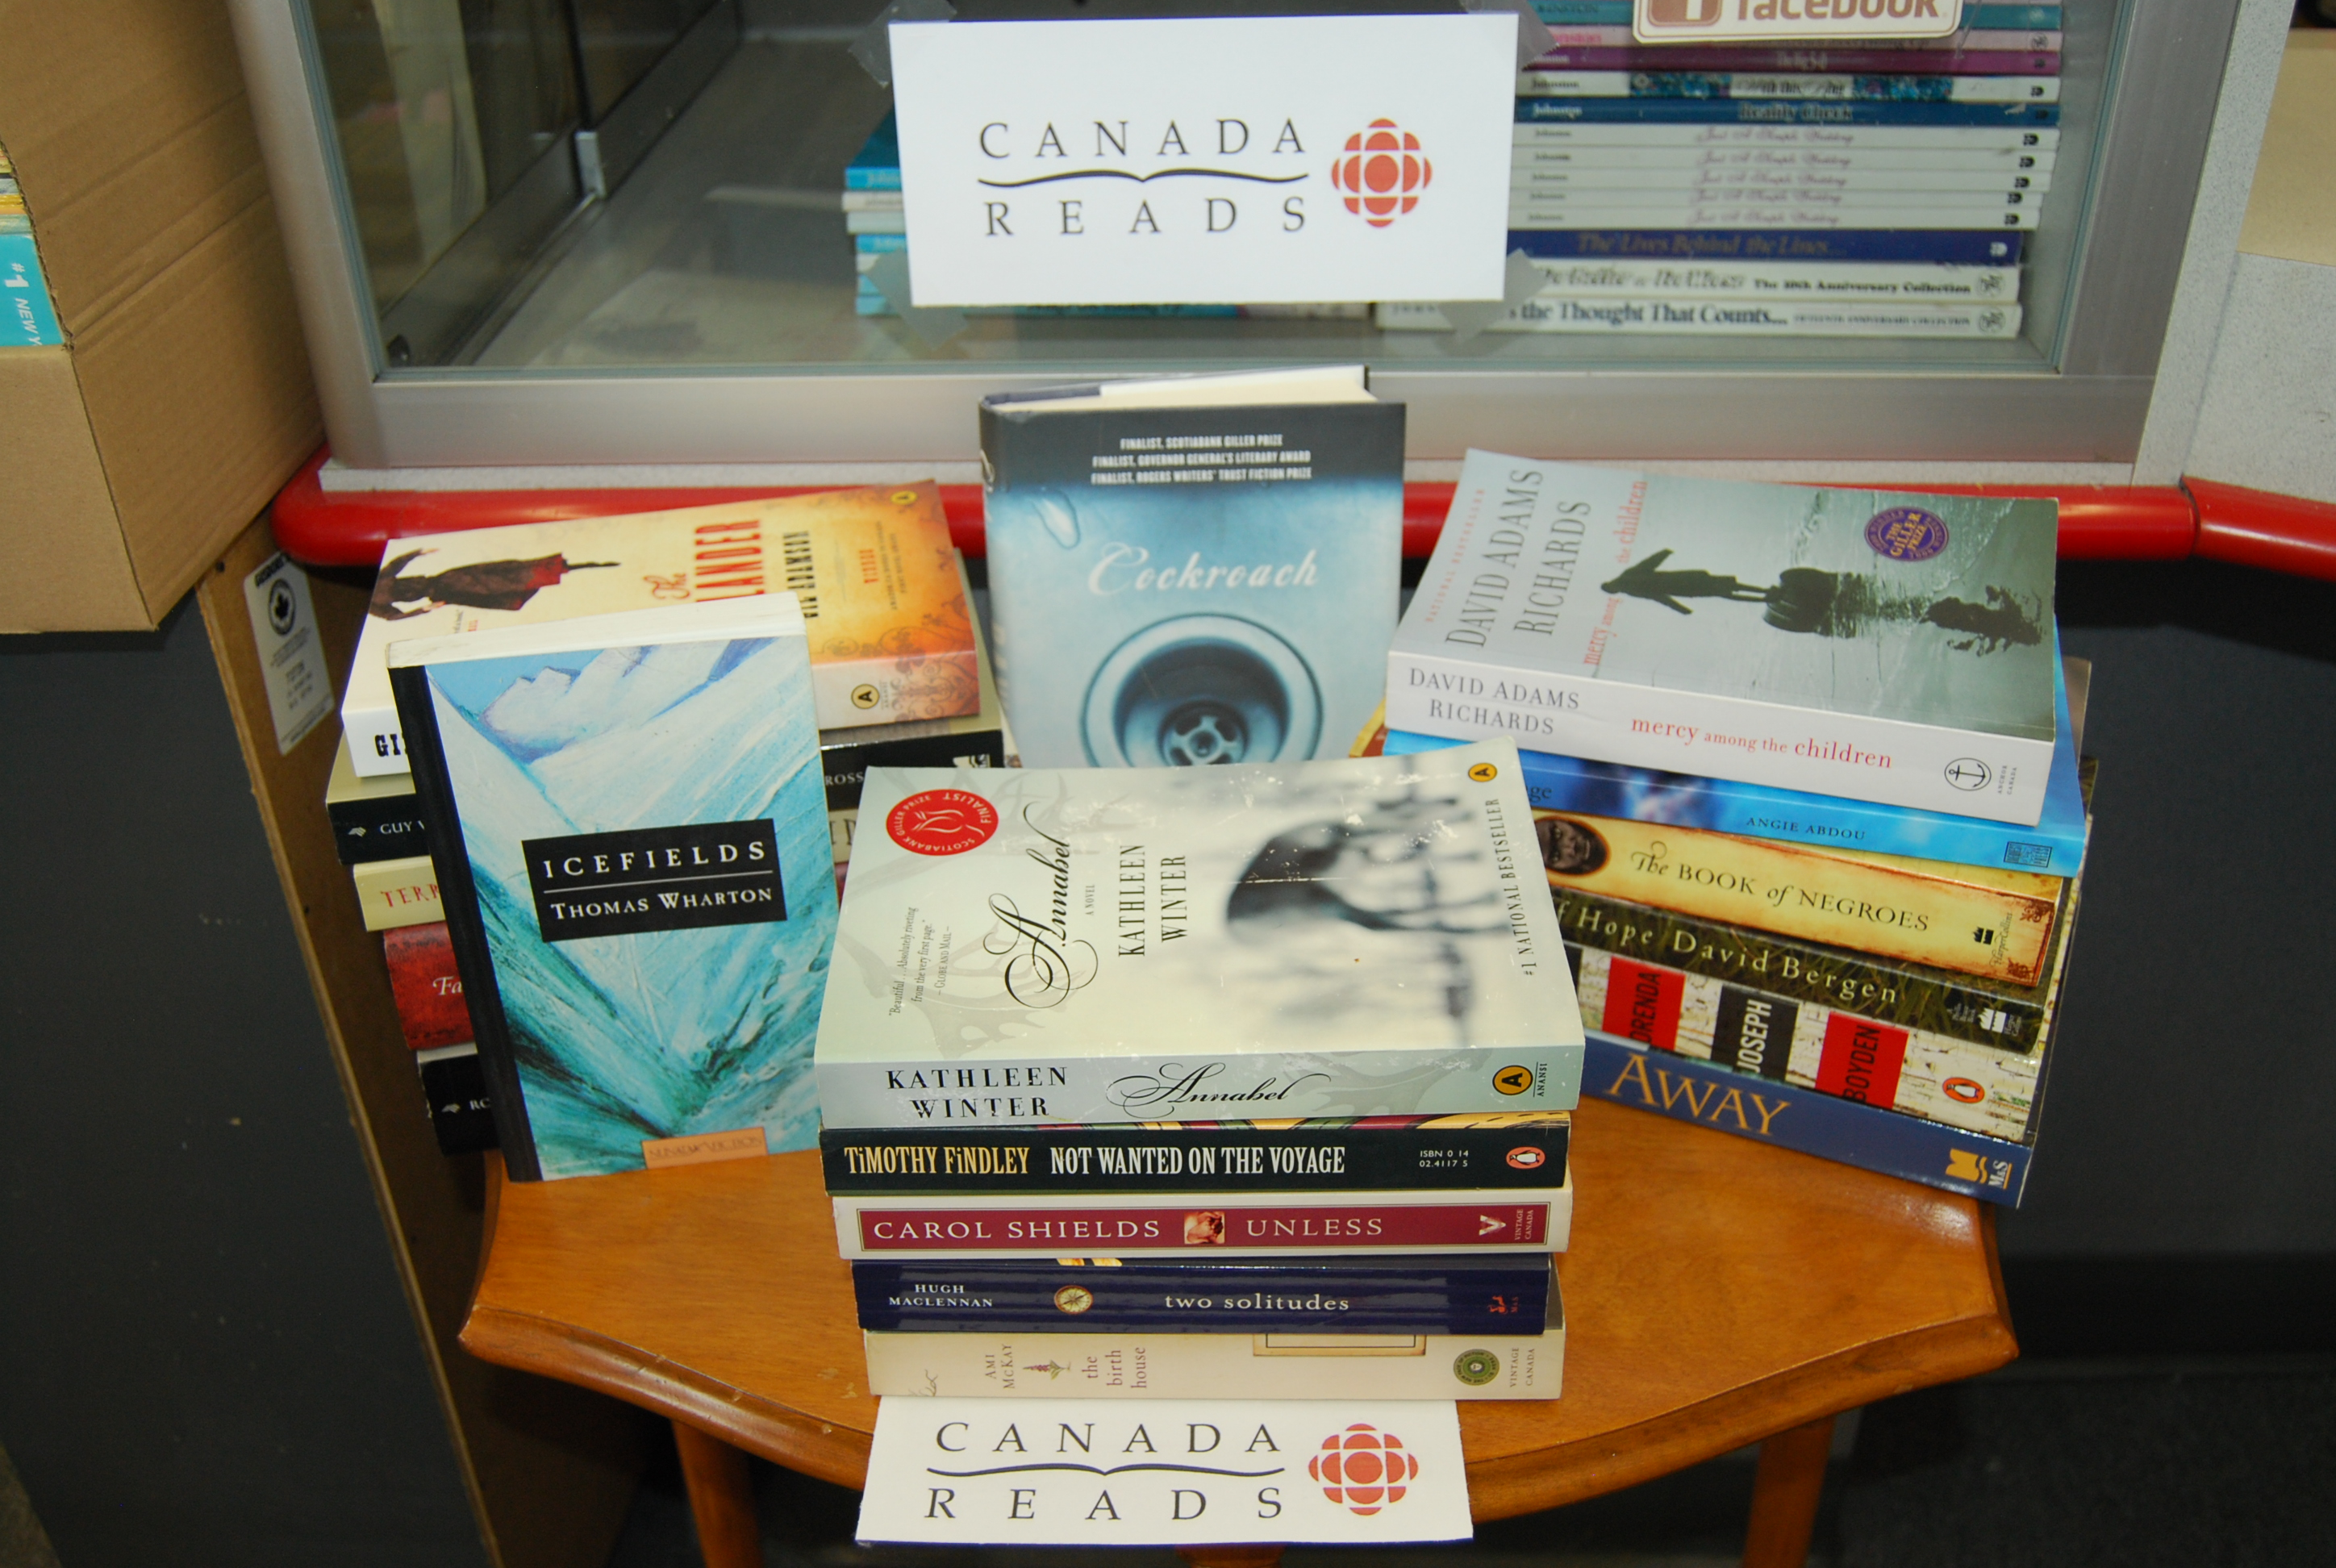 Canada Reads 1